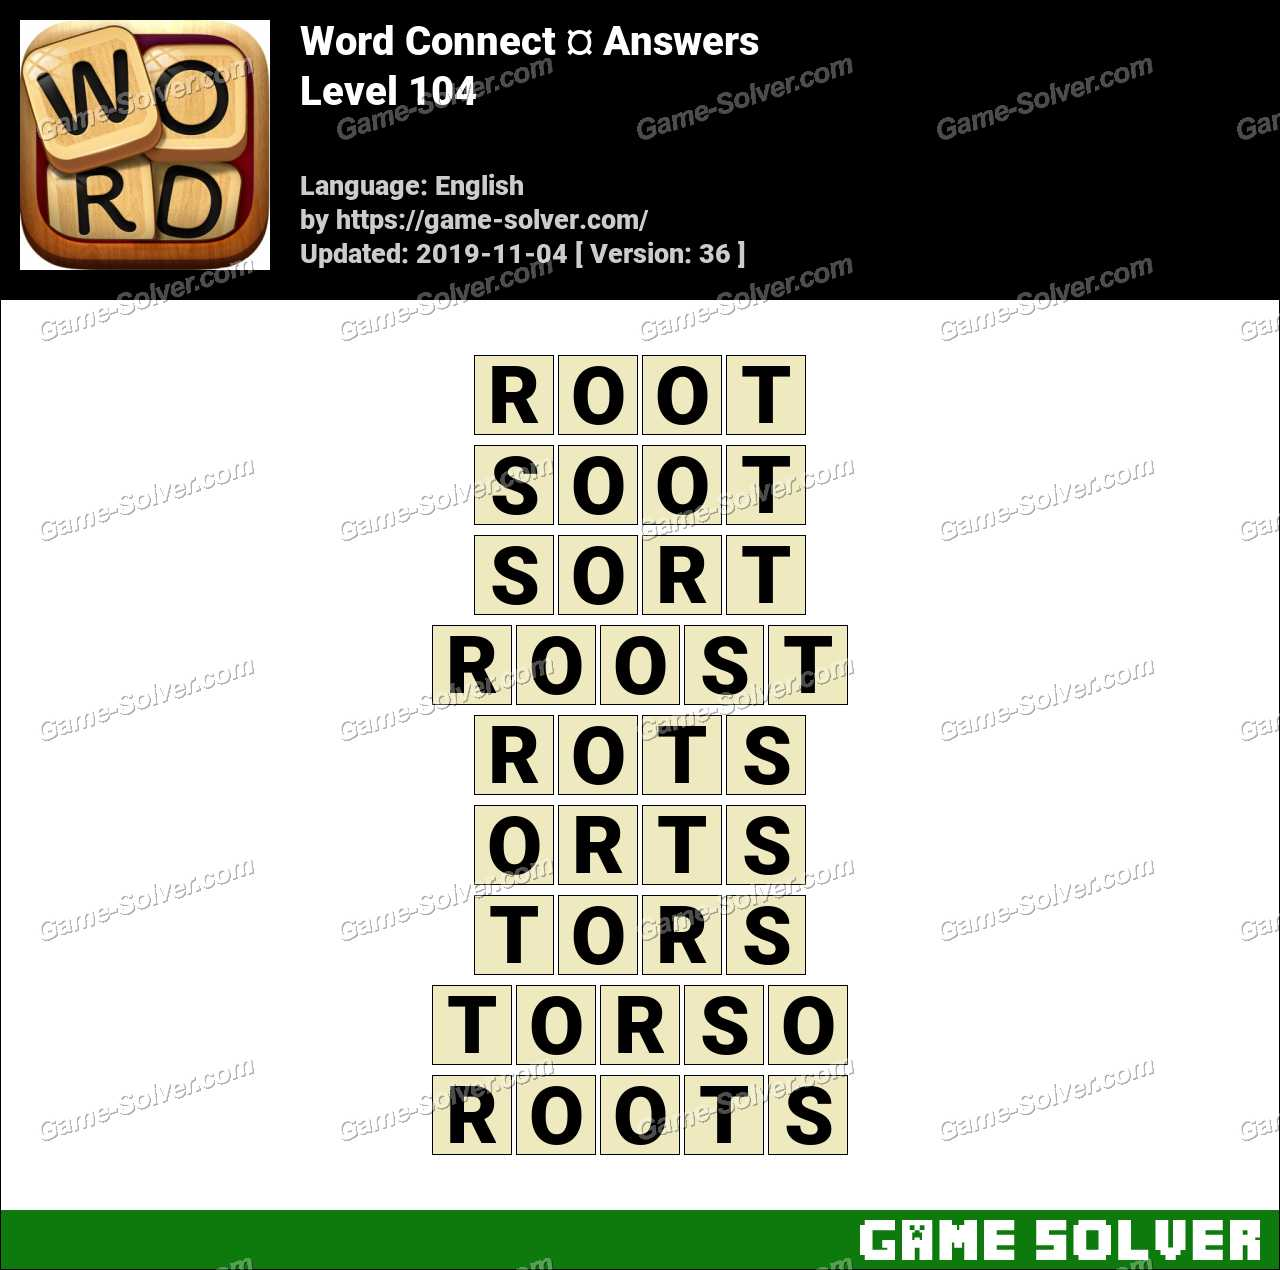 Word Connect Level 104 Answers